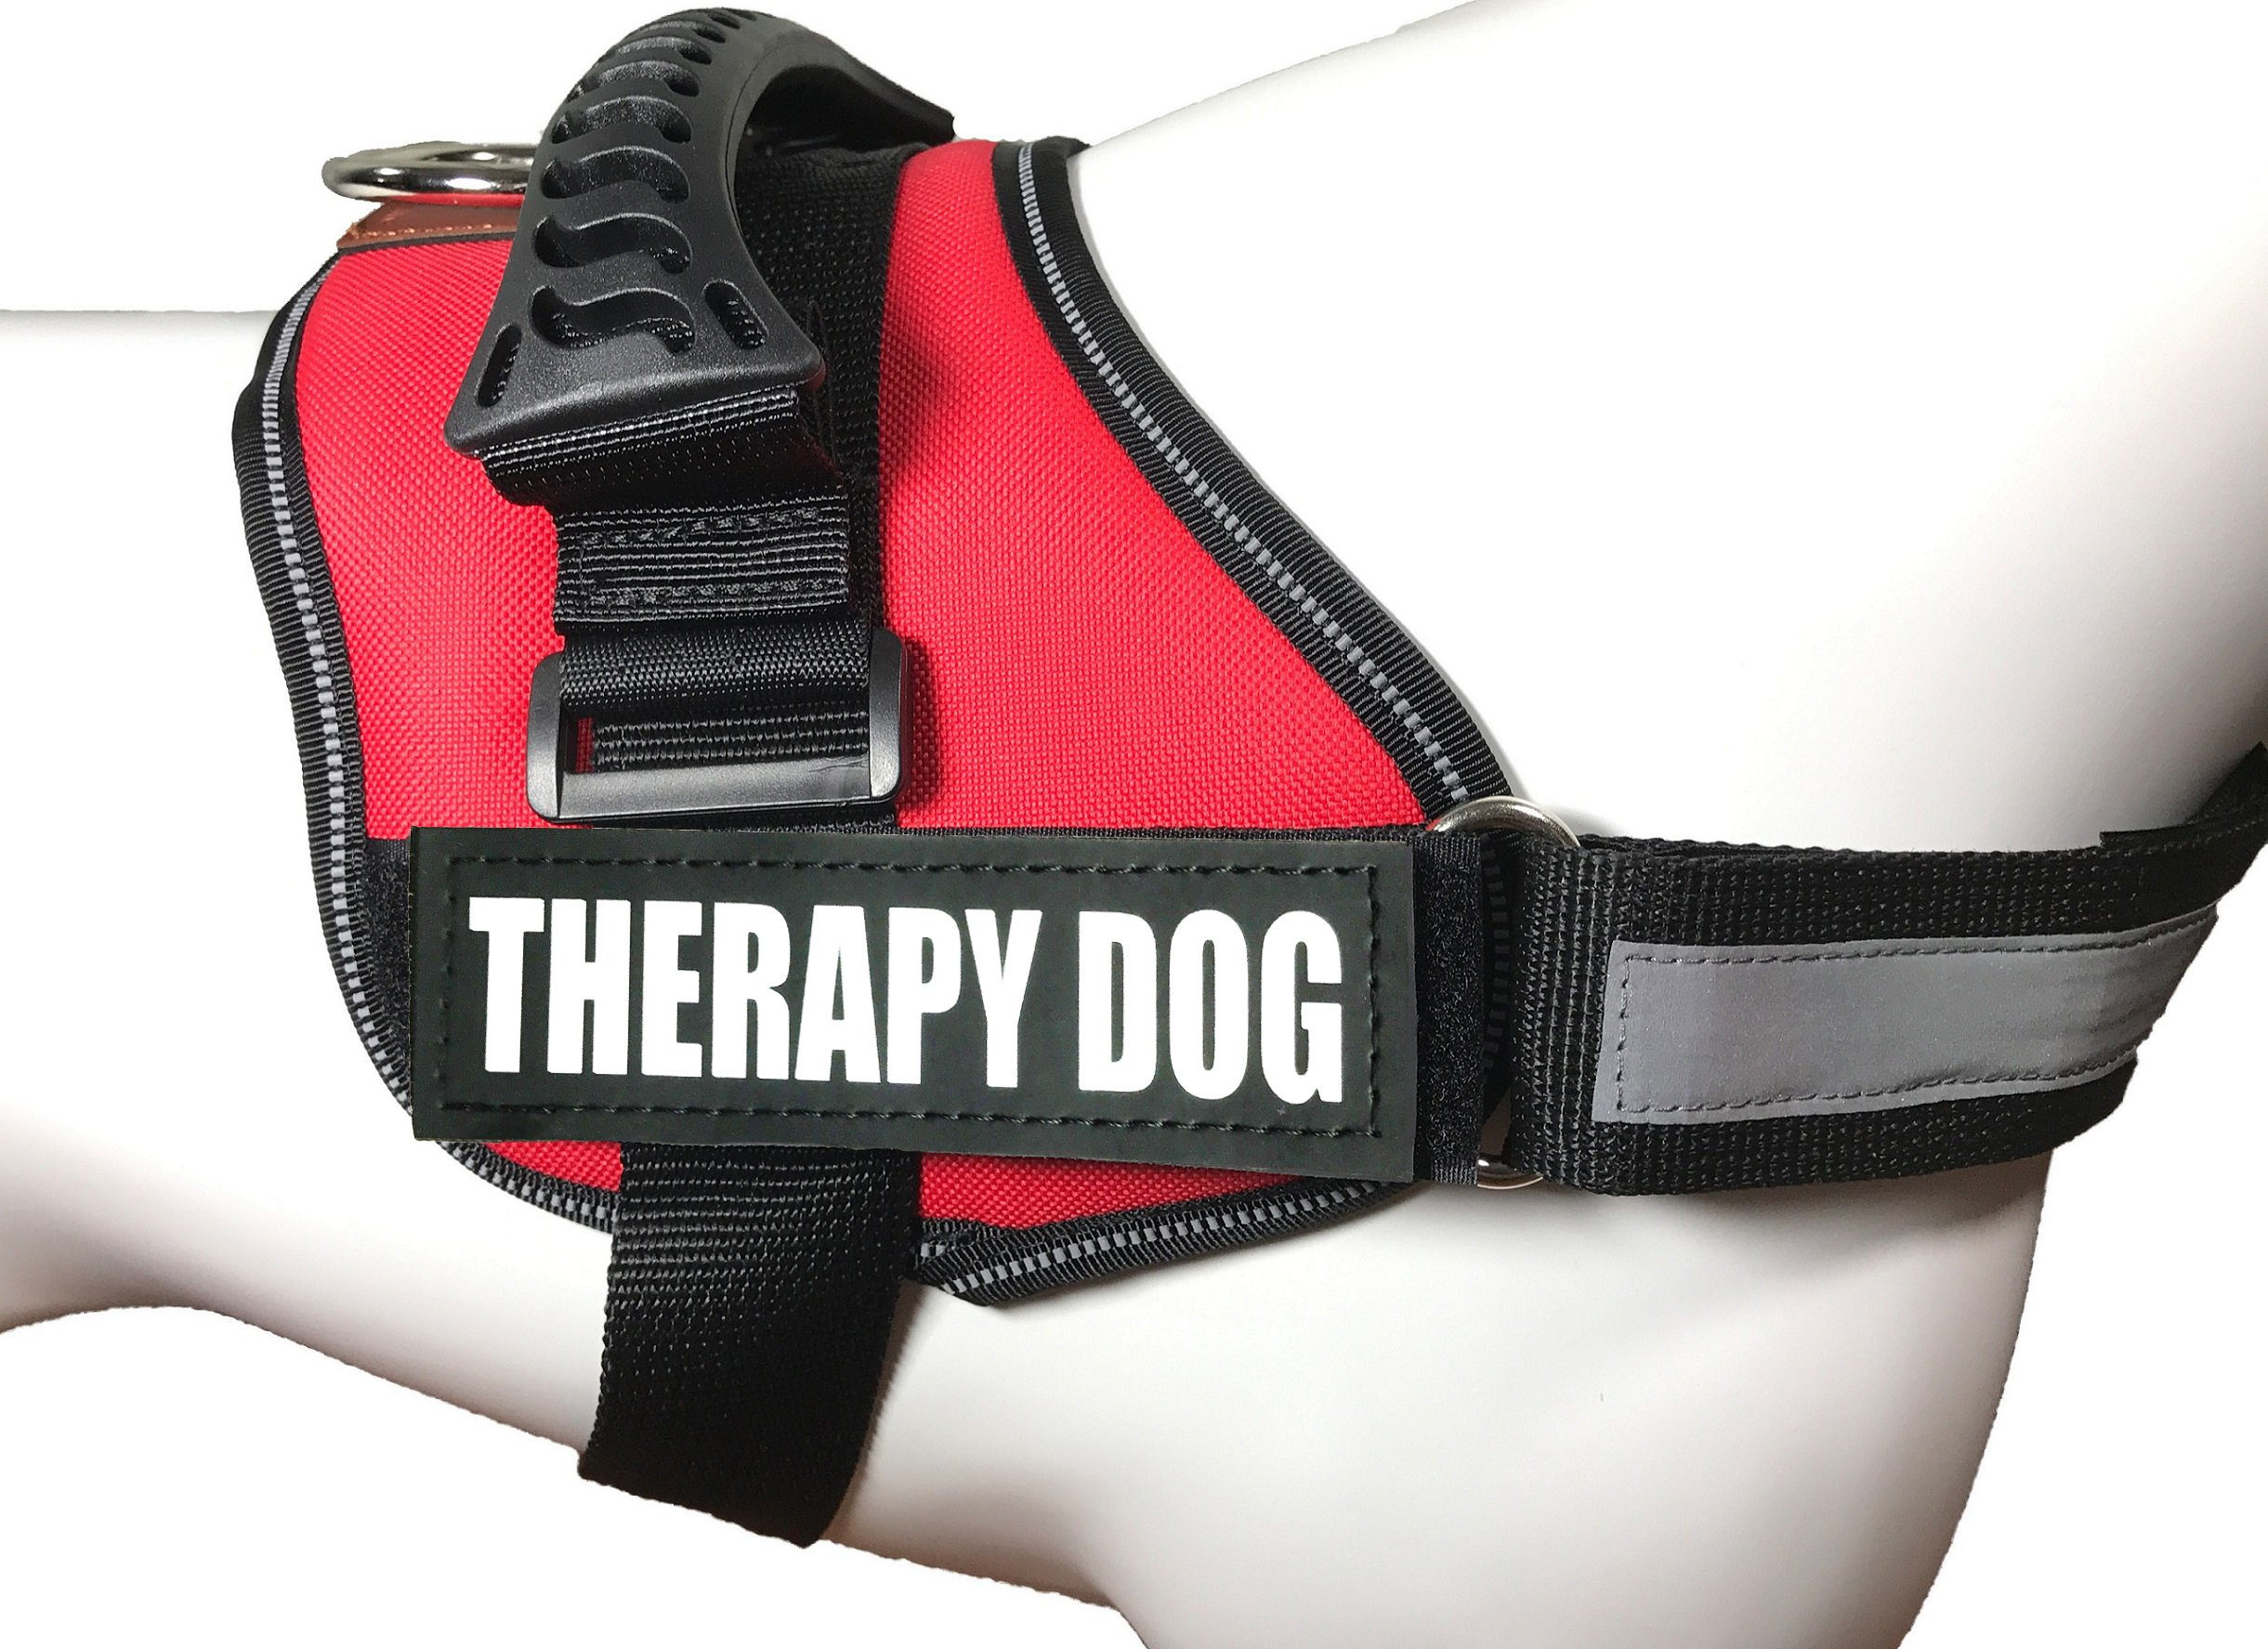 ALBCORP Reflective Therapy Dog Vest Harness, Woven Polyester & Nylon, Adjustable Service Animal Jacket, with 2 Hook and Loop Therapy Dog Removable Patches, Medium, Red